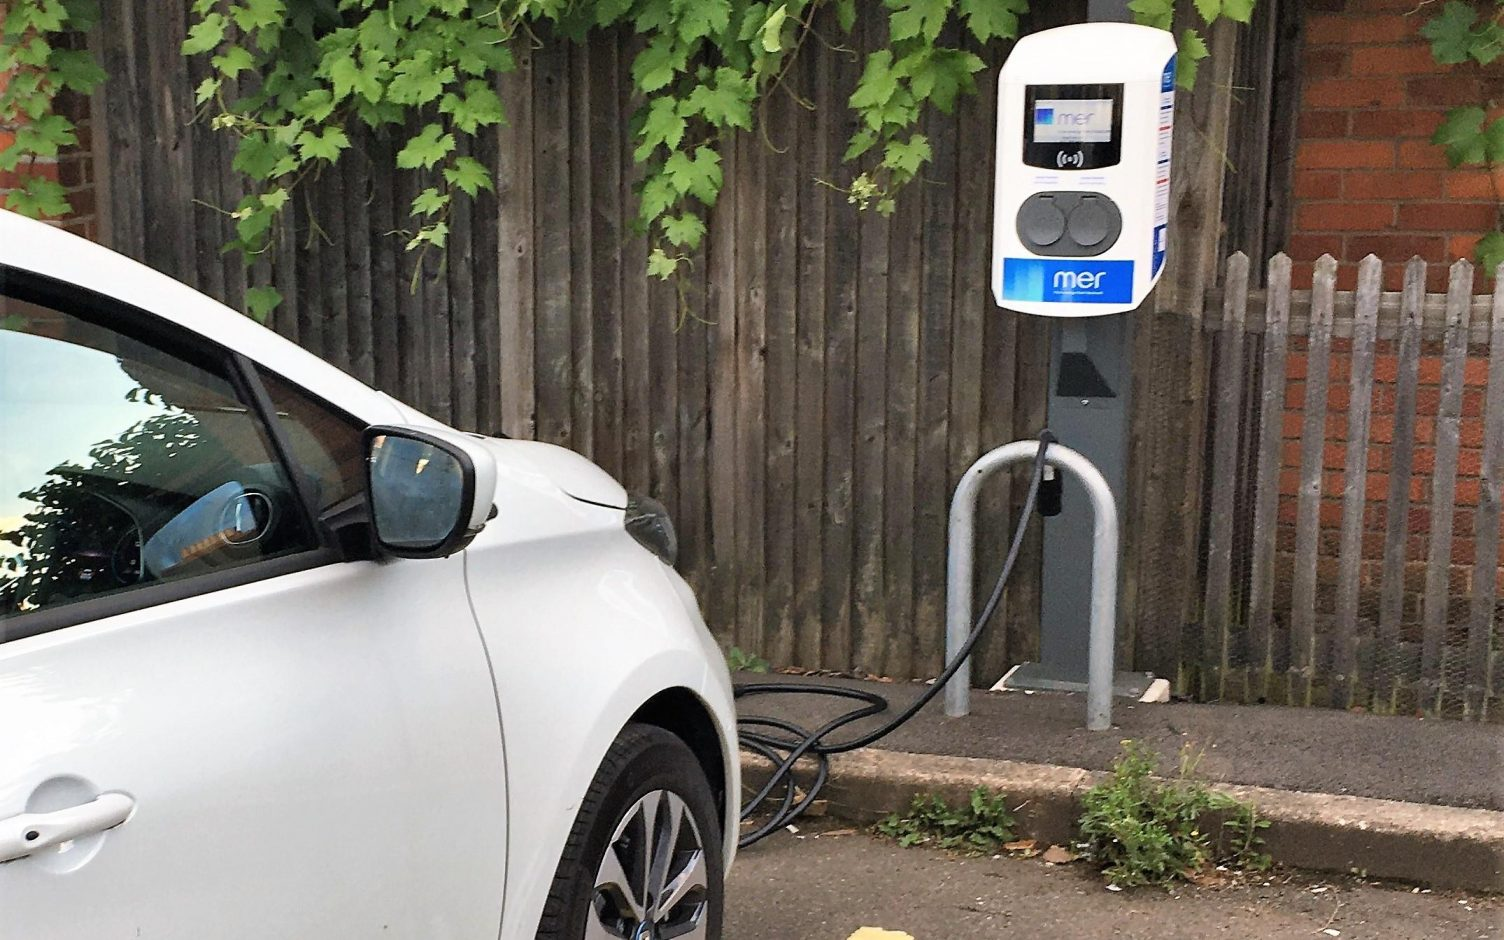 Paua recently trialed its plug and charge solution at a Mer EV fast AC charge. Image: Paua